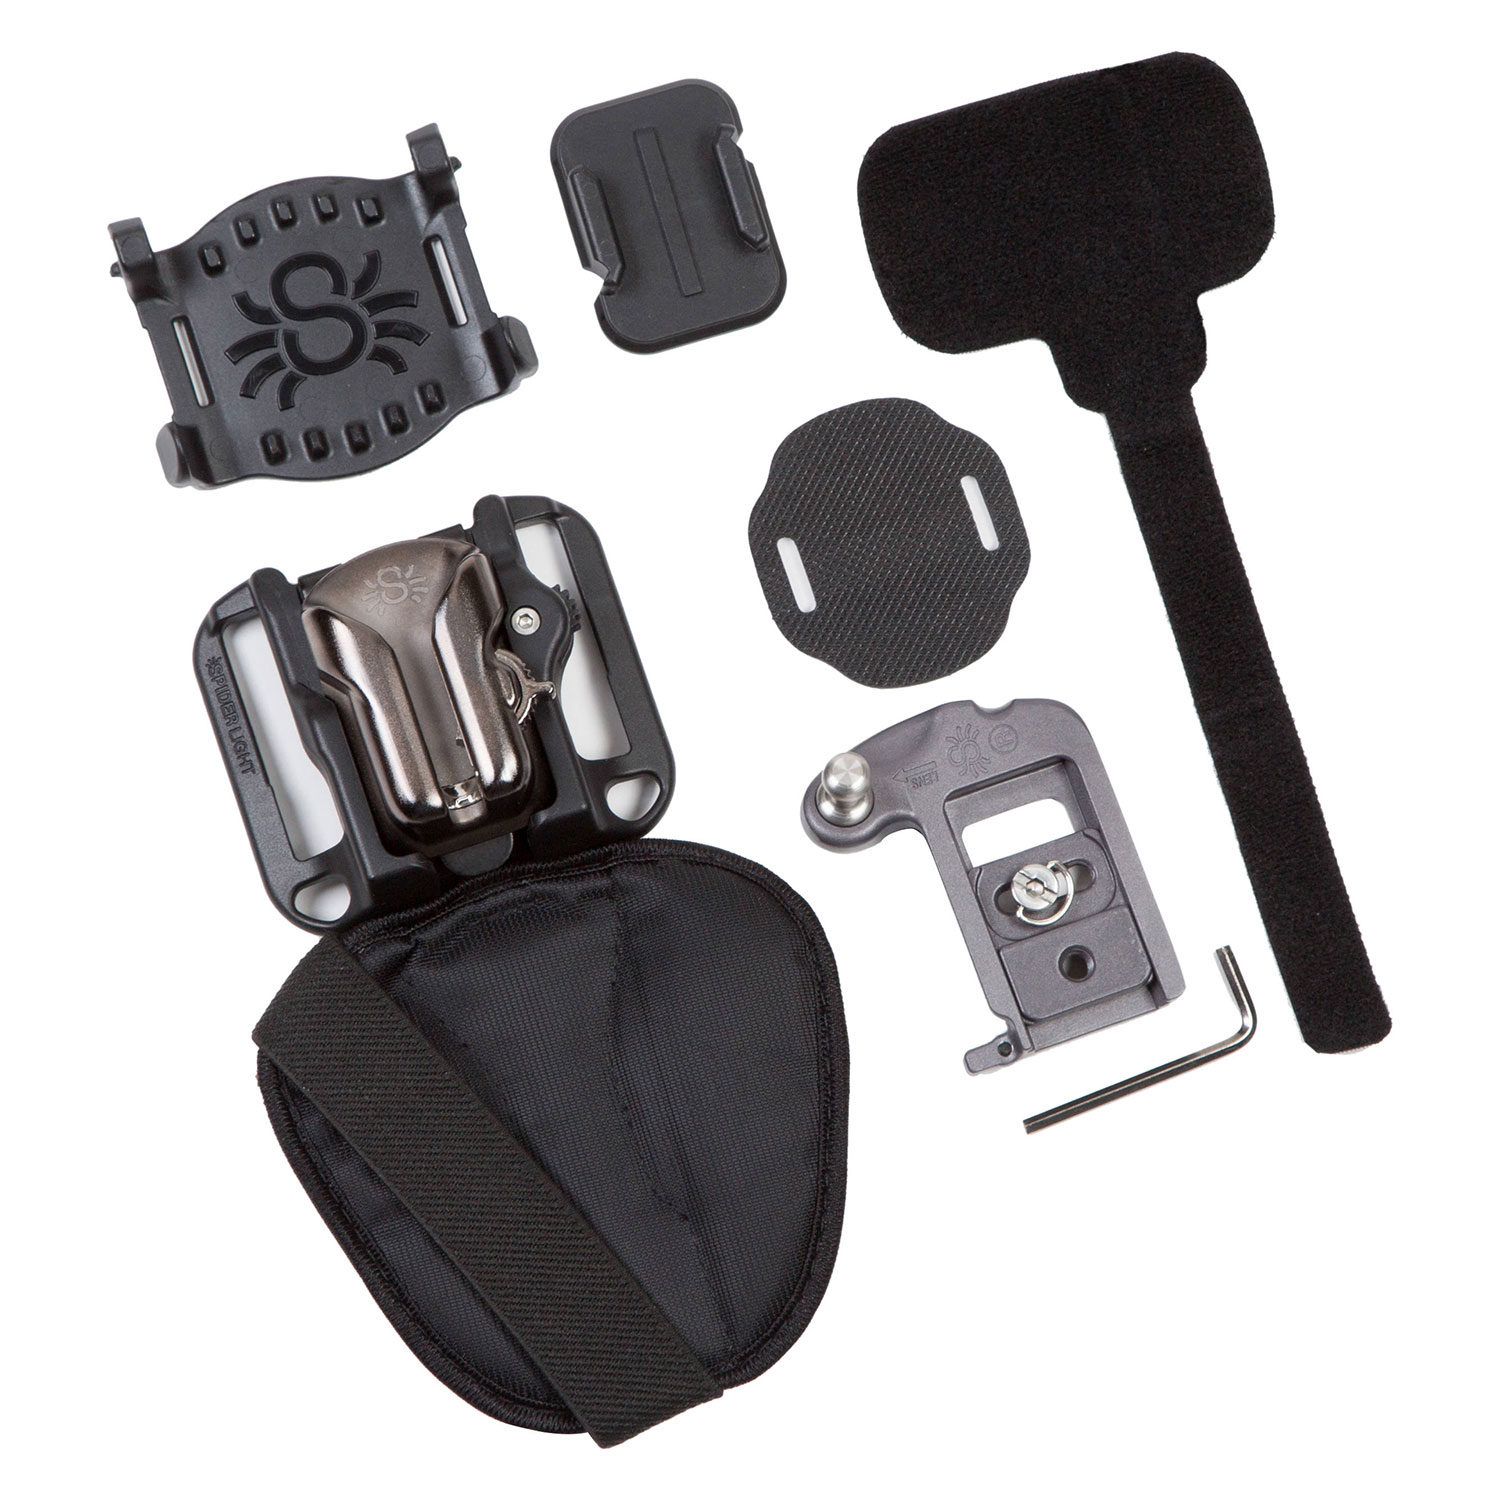 Foto van Spider Camera Holster SpiderLight BackPacker Kit met holster, plate en pin